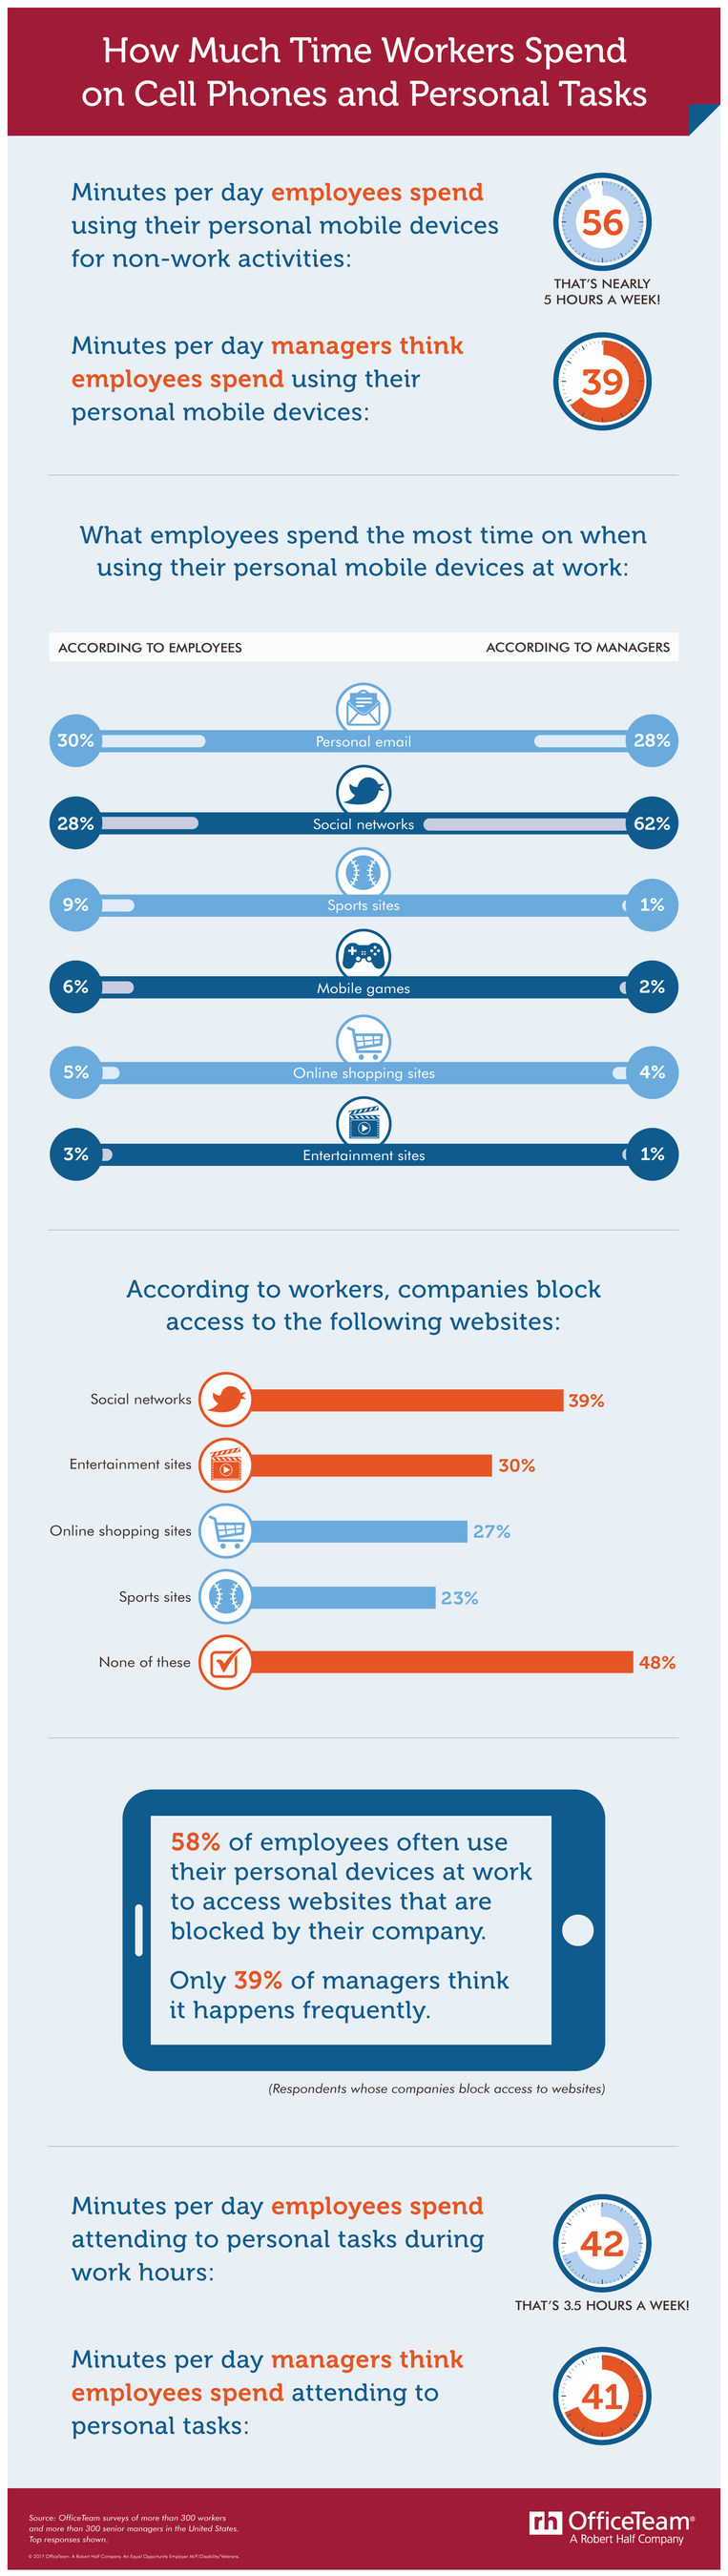 Workers surveyed by OfficeTeam said they squander an average of 56 minutes per day using their mobile device for non-work activities in the office. Professionals also admitted to clocking 42 minutes a day on personal tasks. All in all, the average employee could be wasting more than 8 hours per week on activities unrelated to the job!